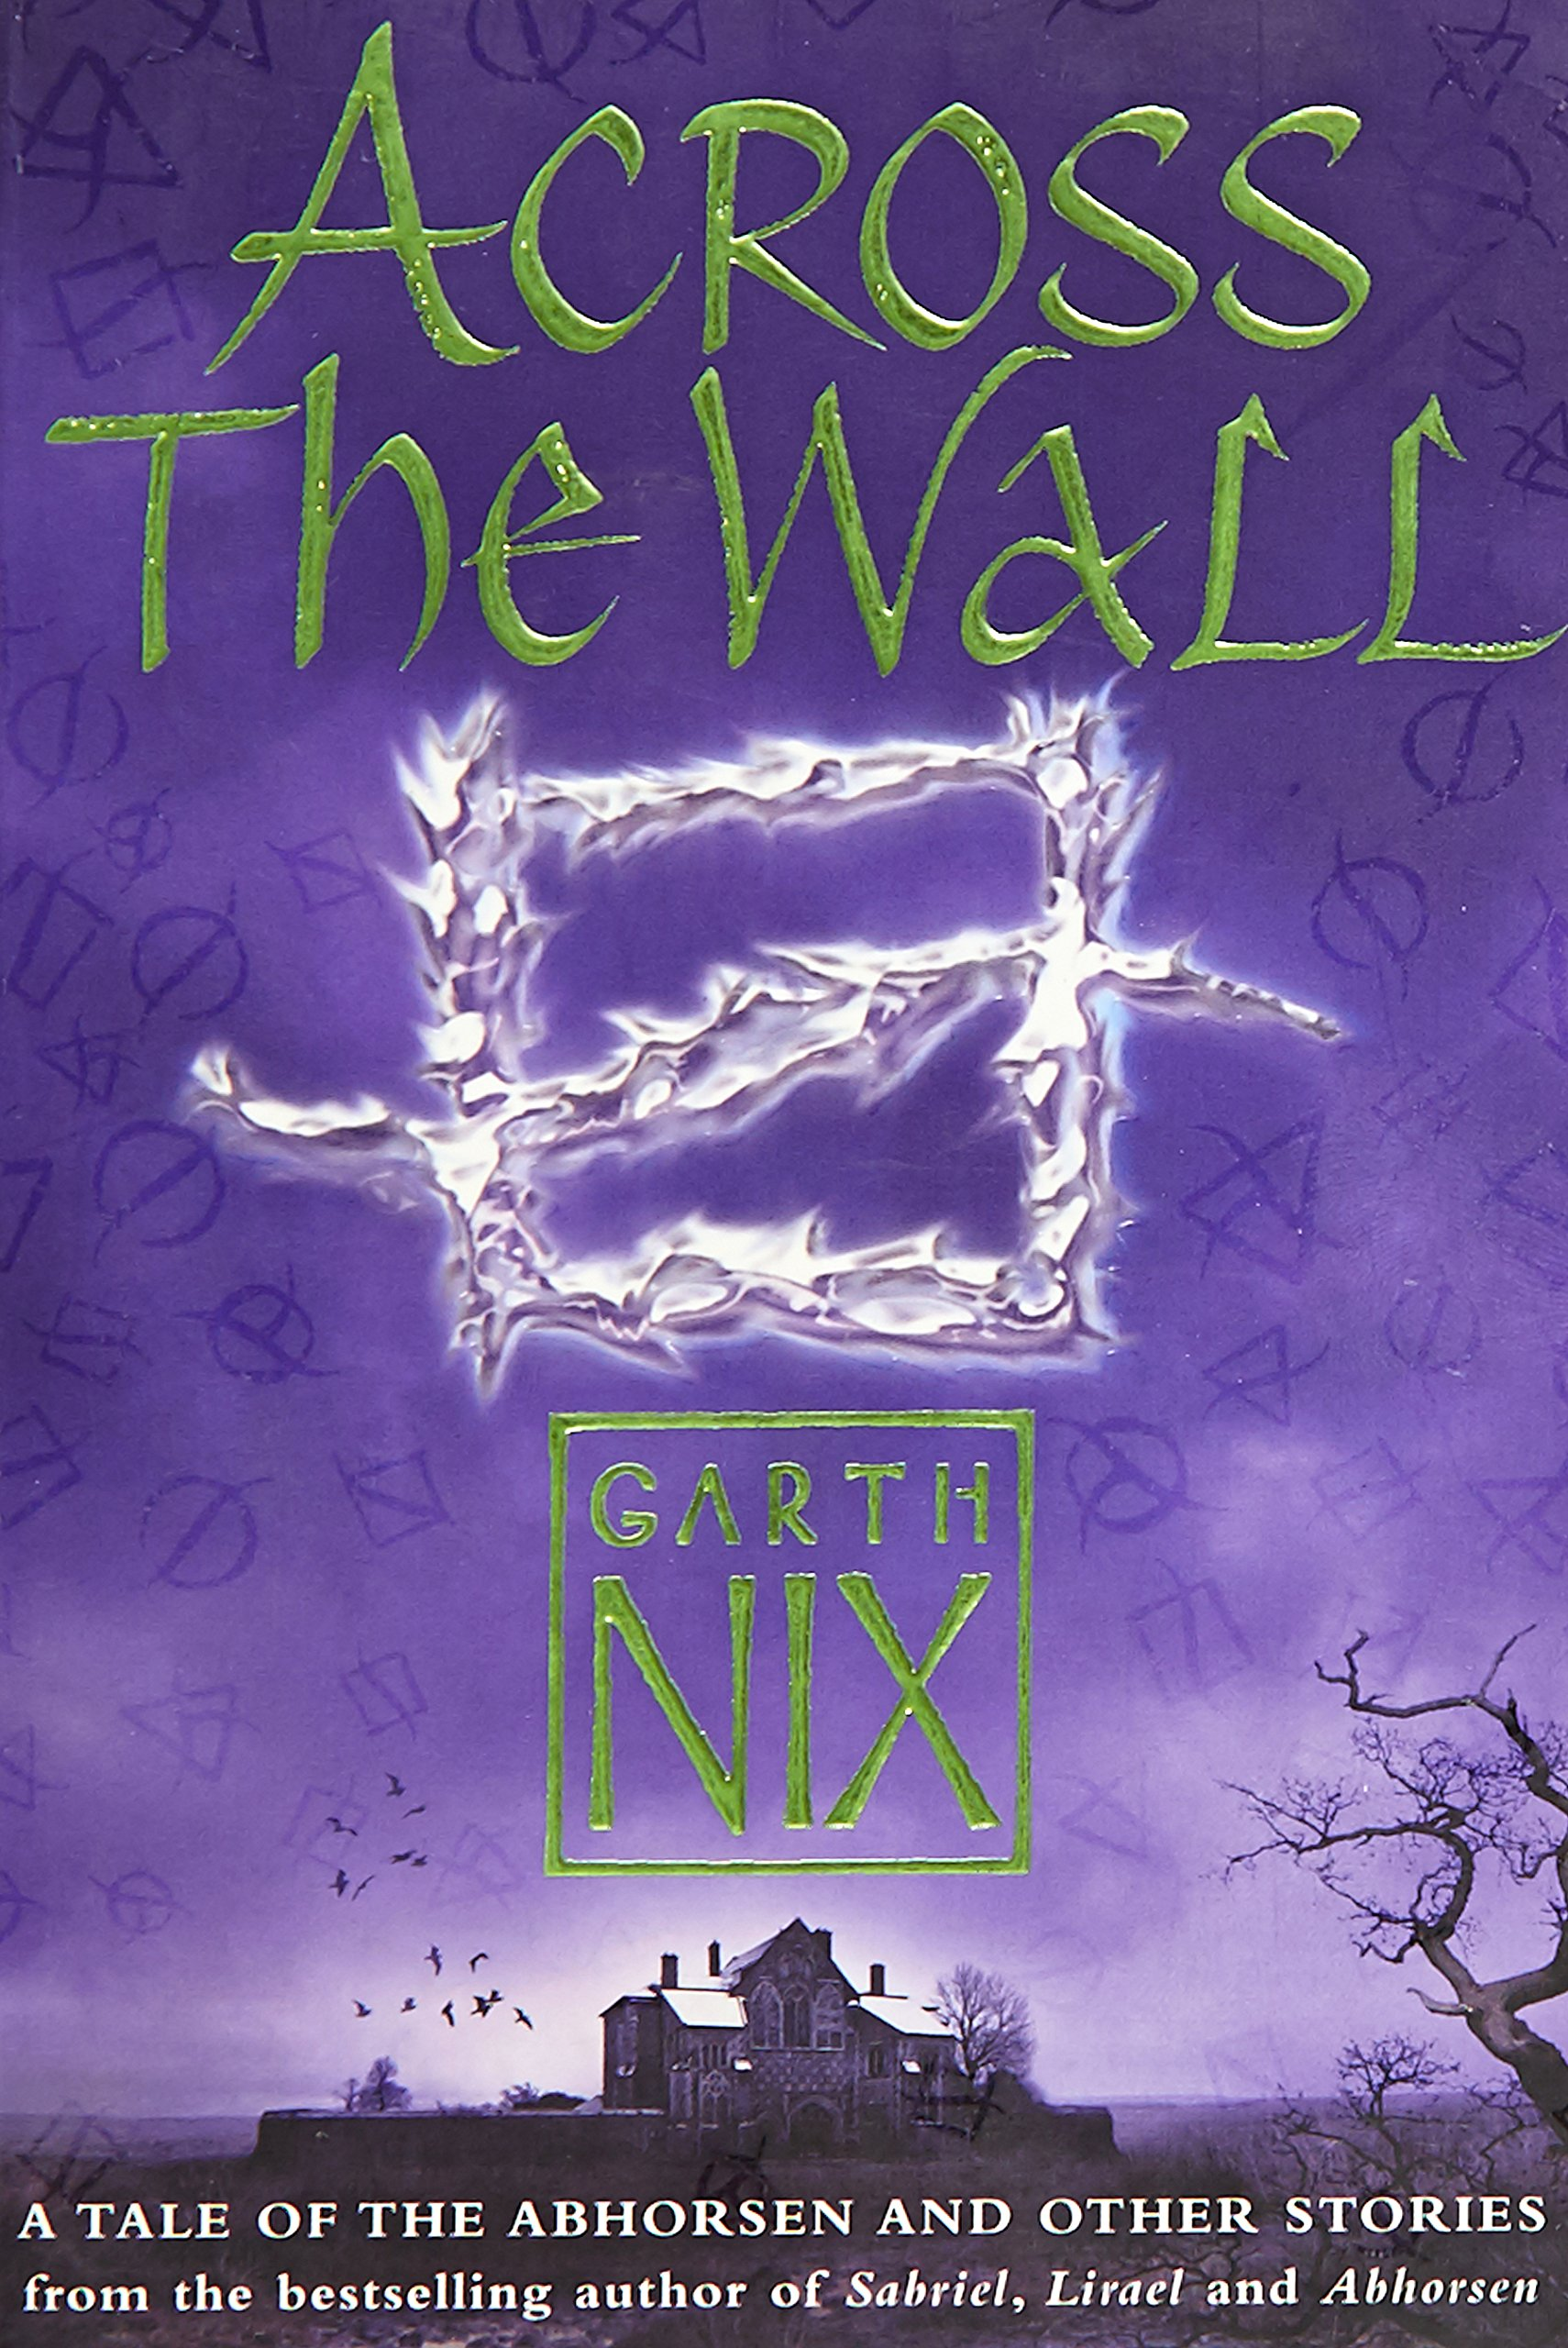 12. Across the Wall: A Tale of Abhorsen and Other Stories